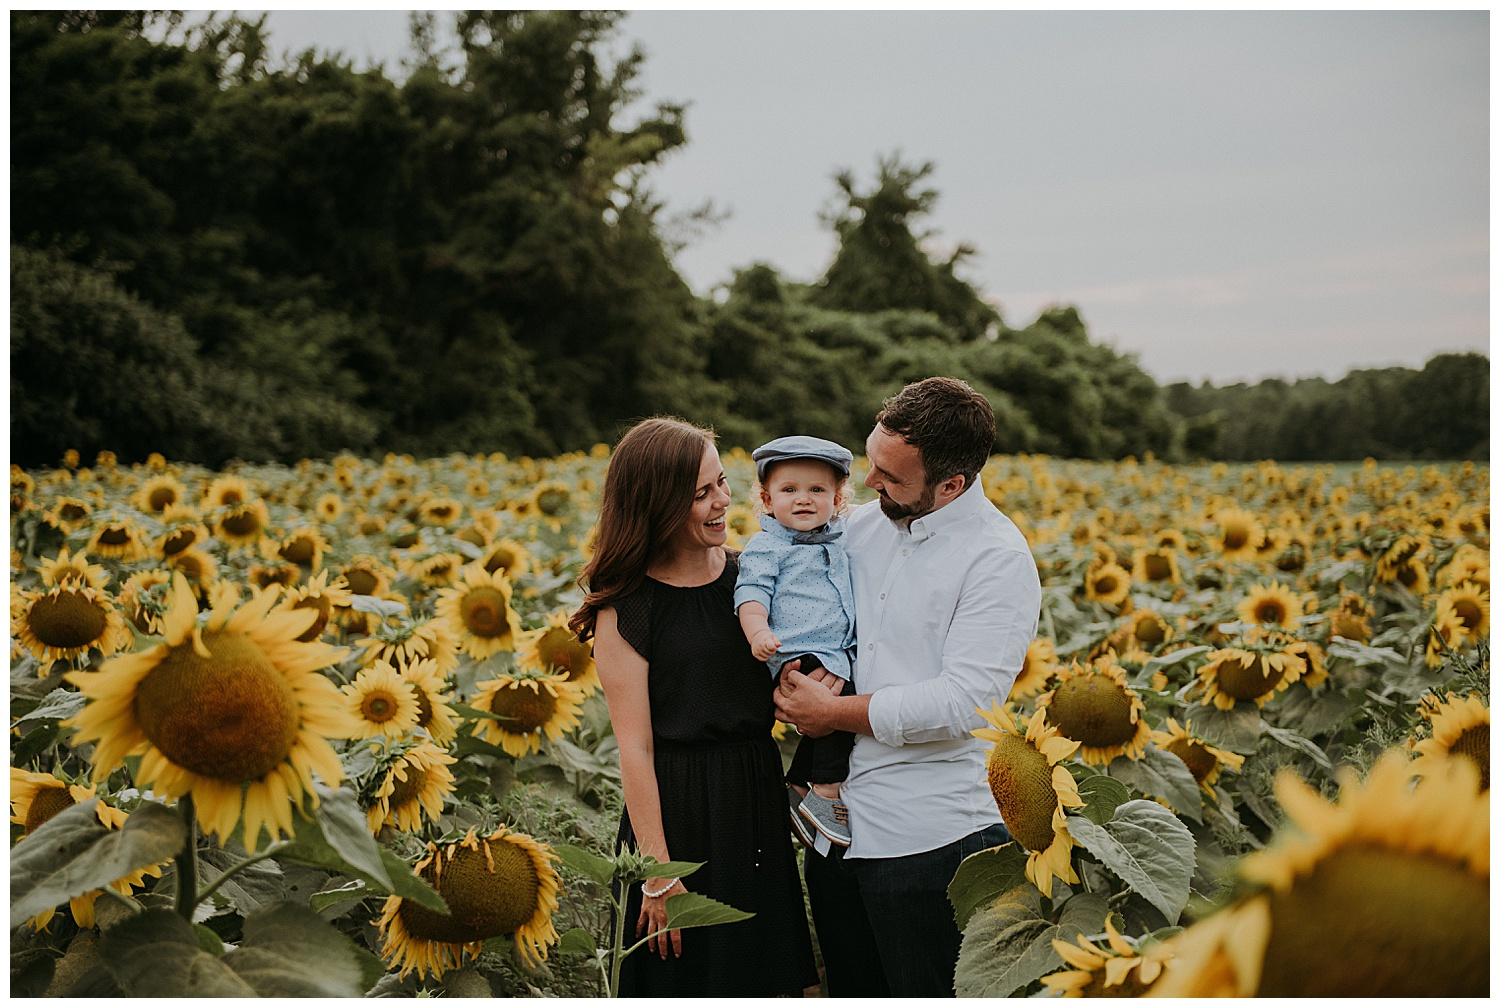 Holly McMurter Photographs | Prince Edward County Sunflower Family Session_0001.jpg